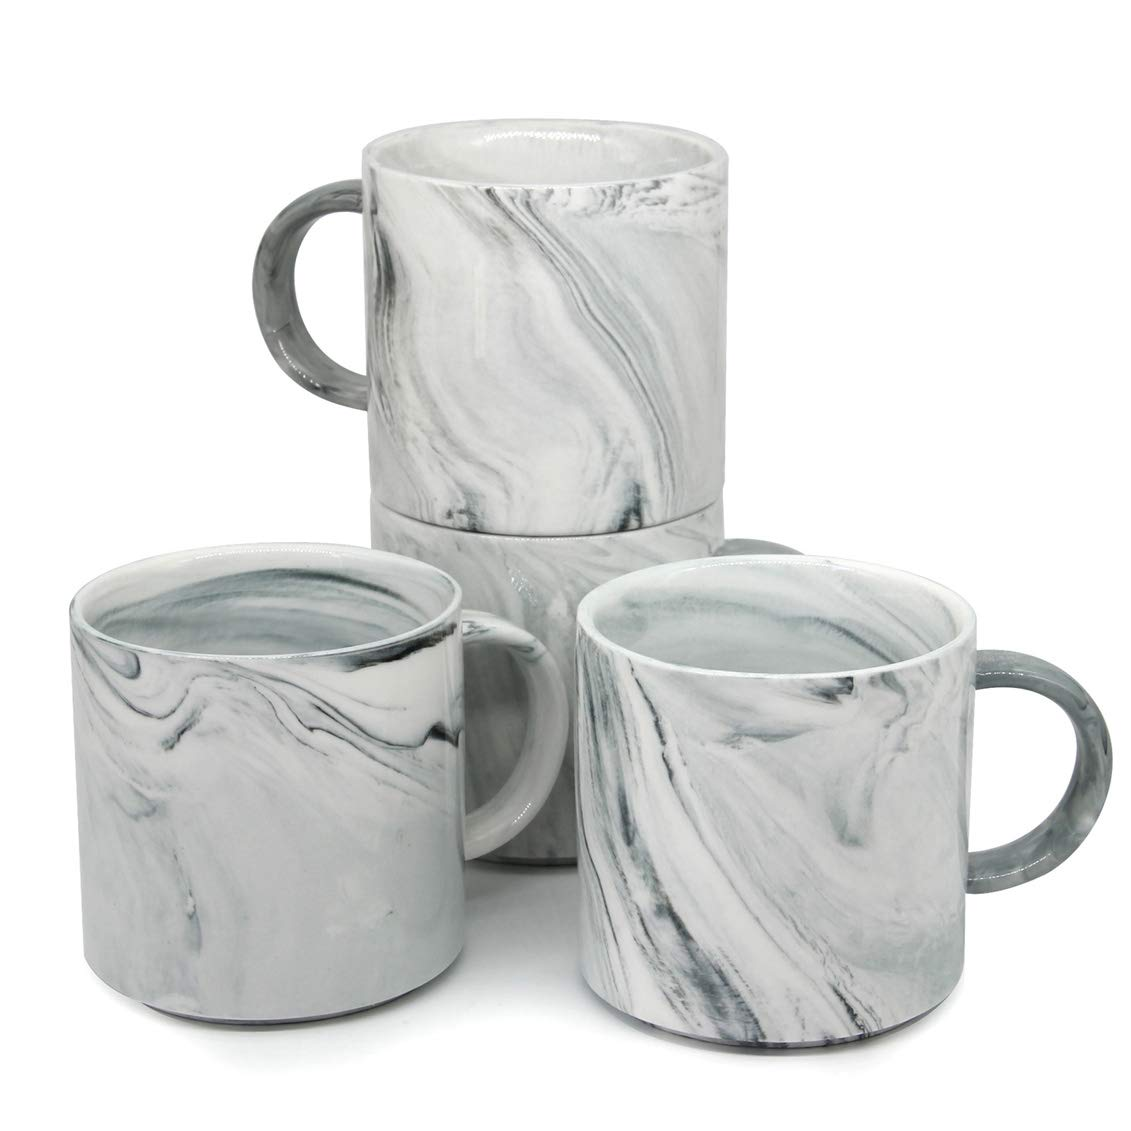 12 oz Stackable Coffee Mugs, Zocokey M101 Novelty Marble Ceramic Cup for Boy Girl lover, Set of 4, Gray